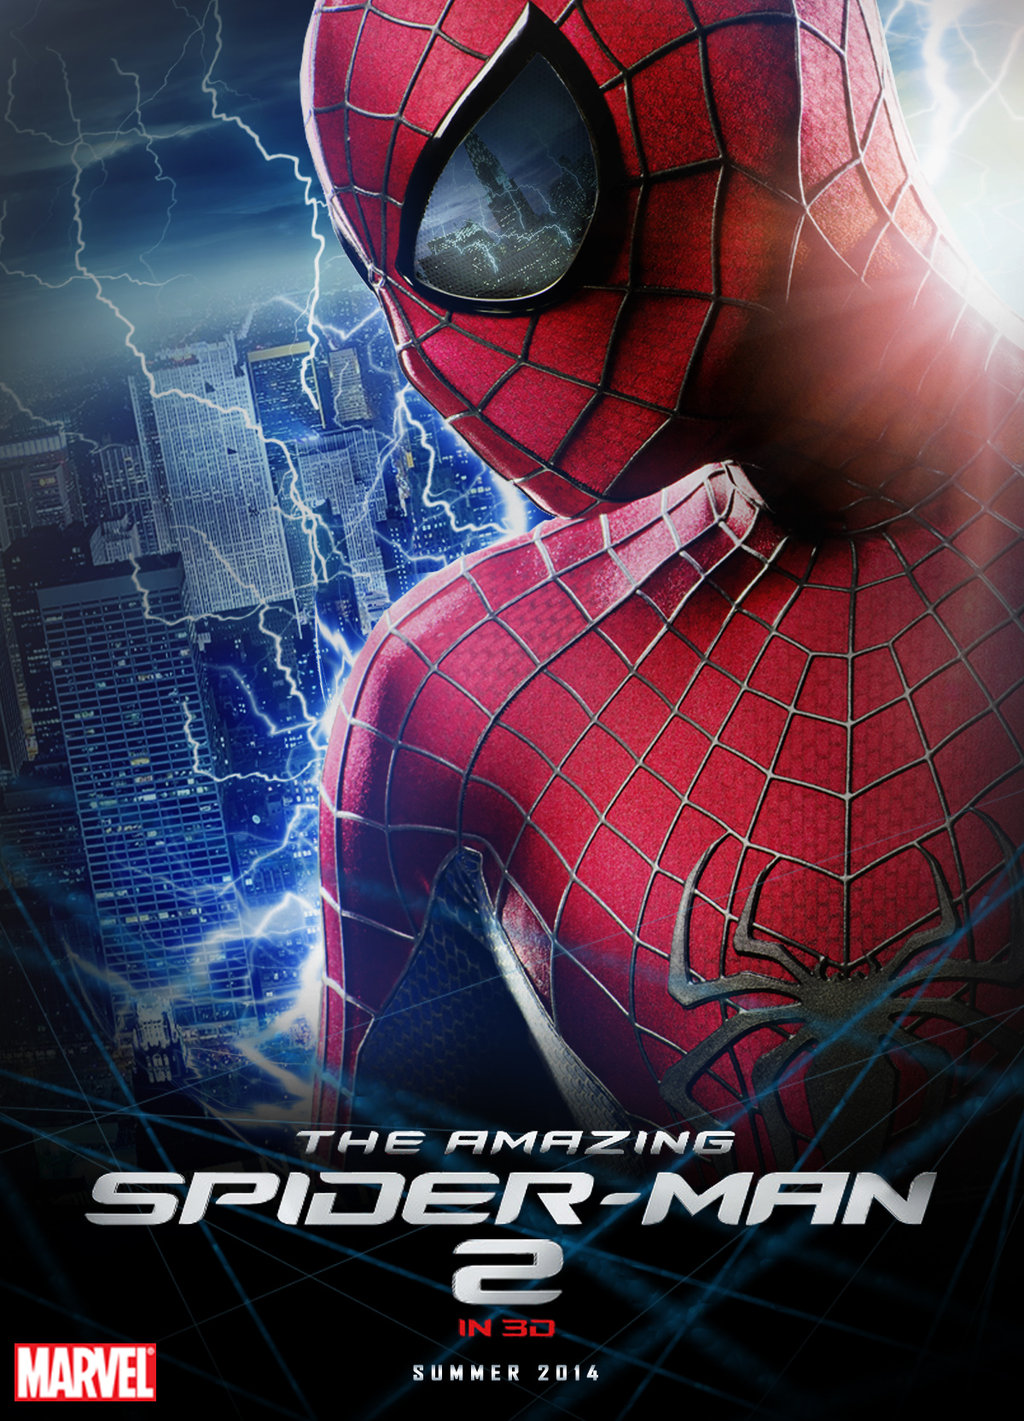 The Final Trailer for The Amazing Spider-Man 2